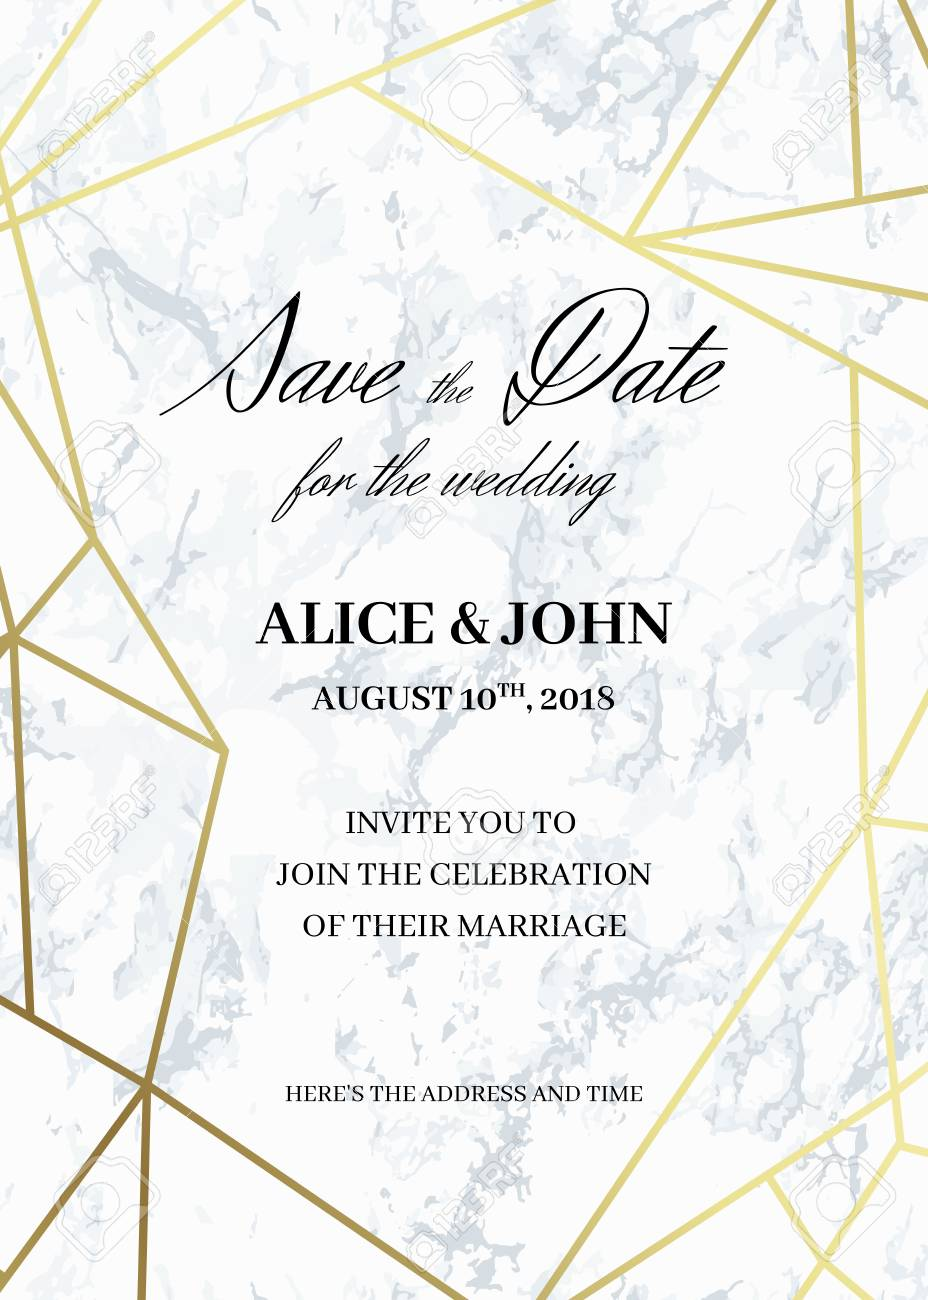 save the date card template of geometric design invitation to